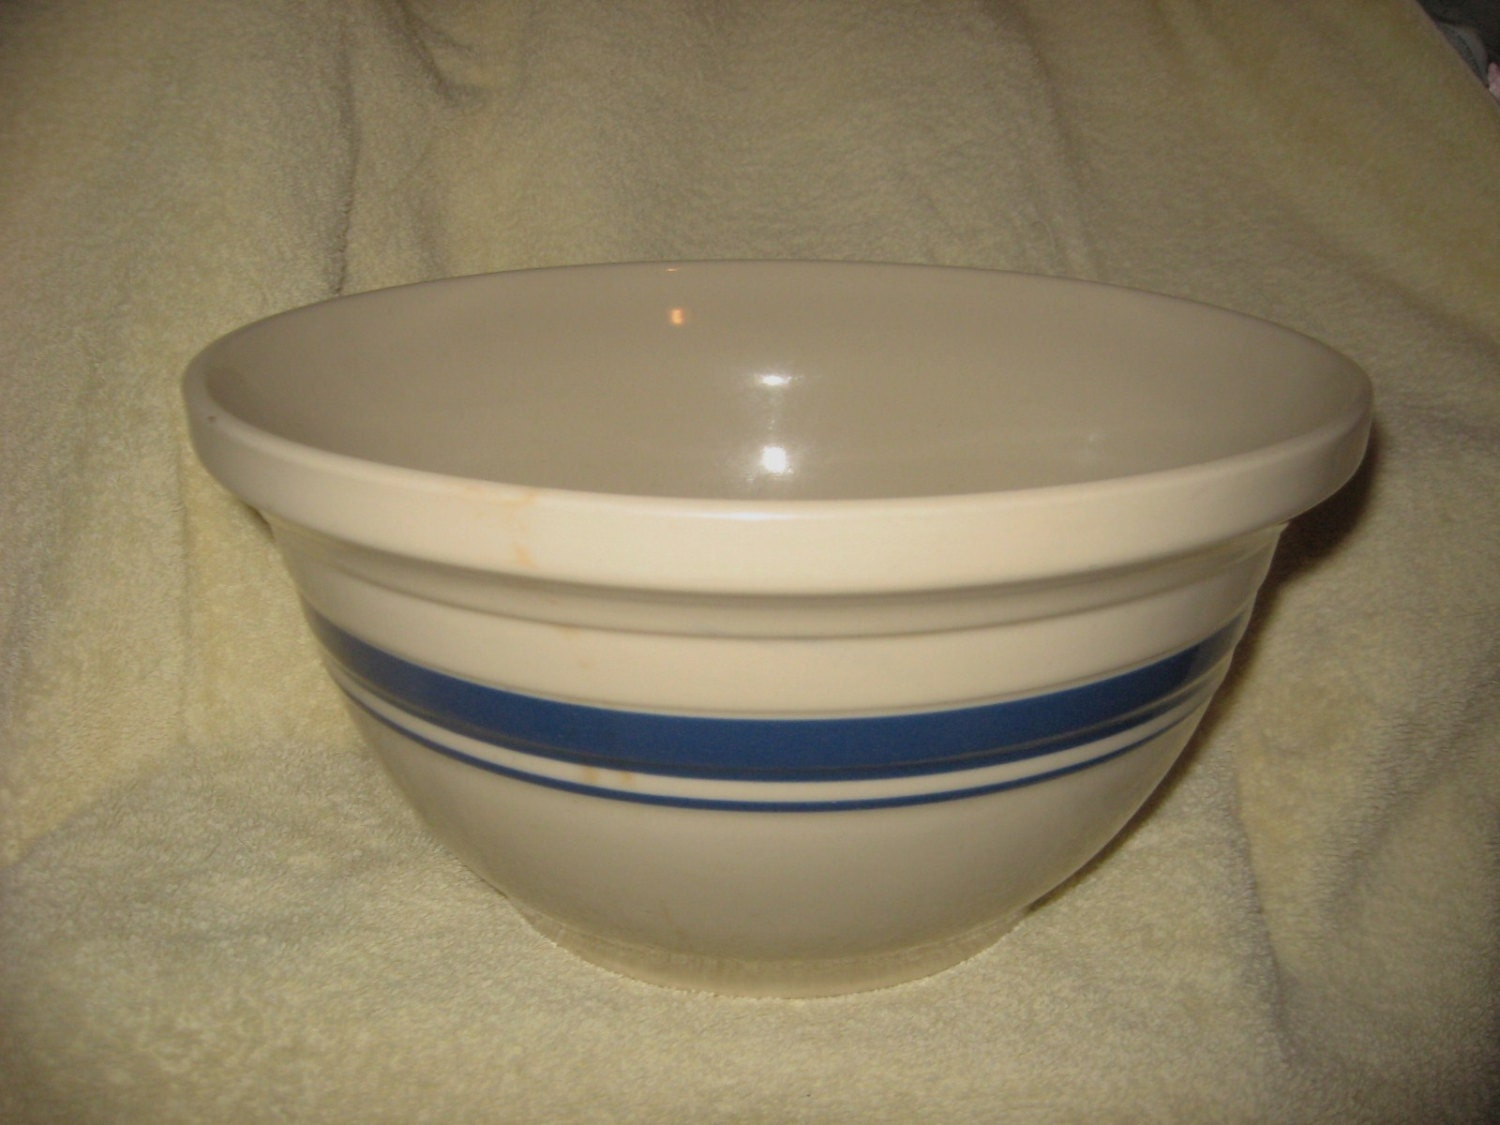 friendship pottery roseville ohio blue stripe bowl 4 by